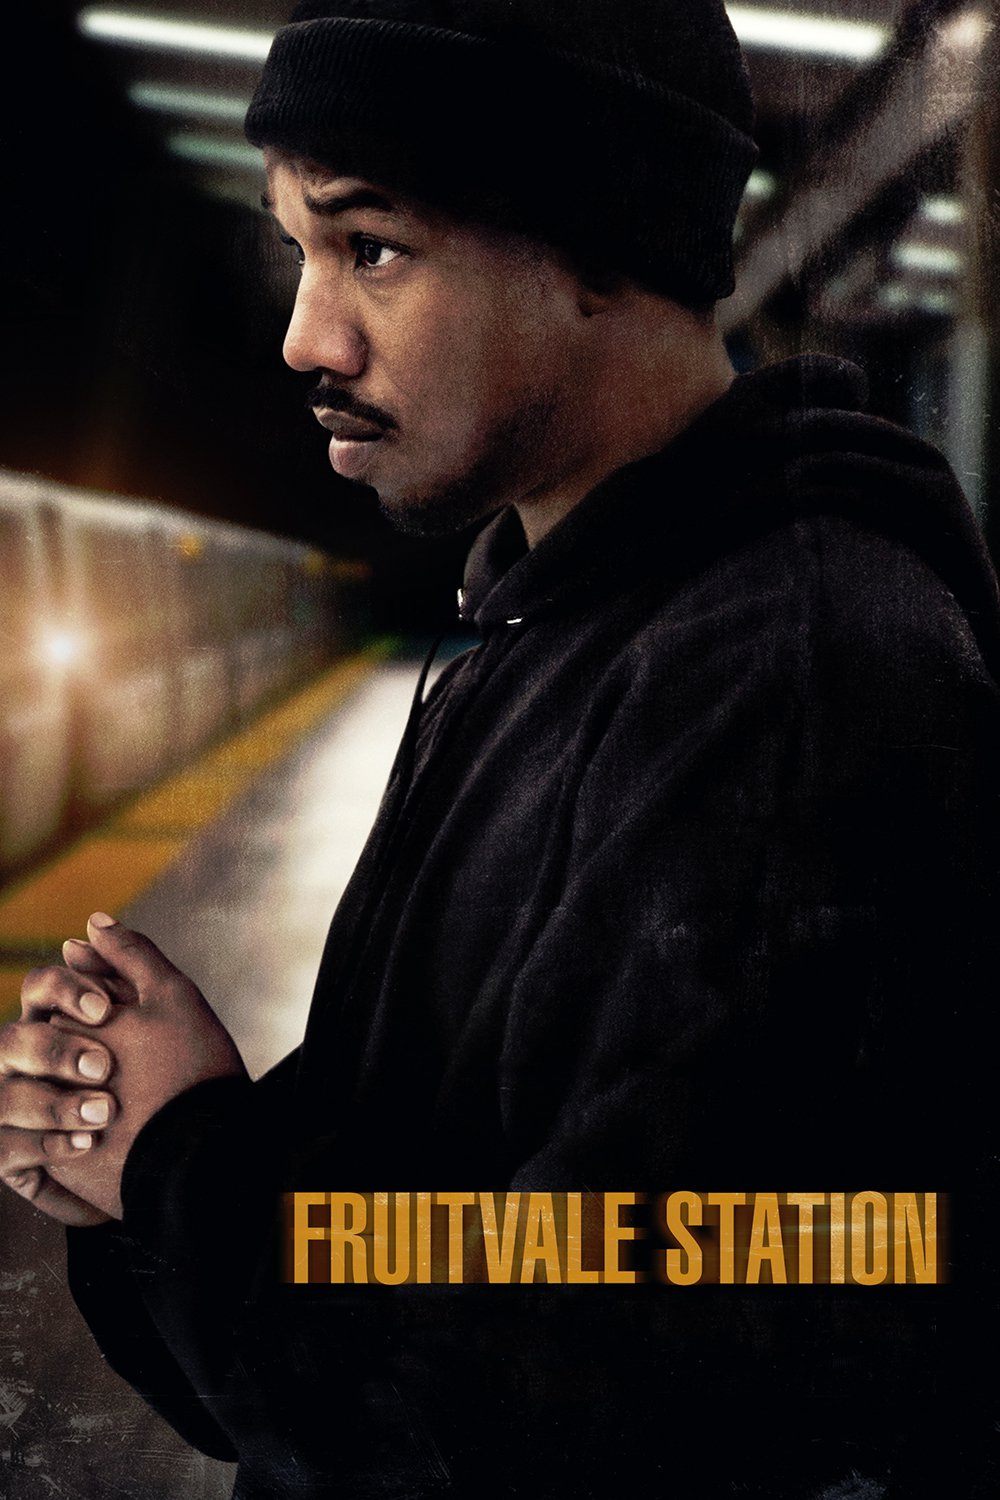 Last Stop Fruitvale Station